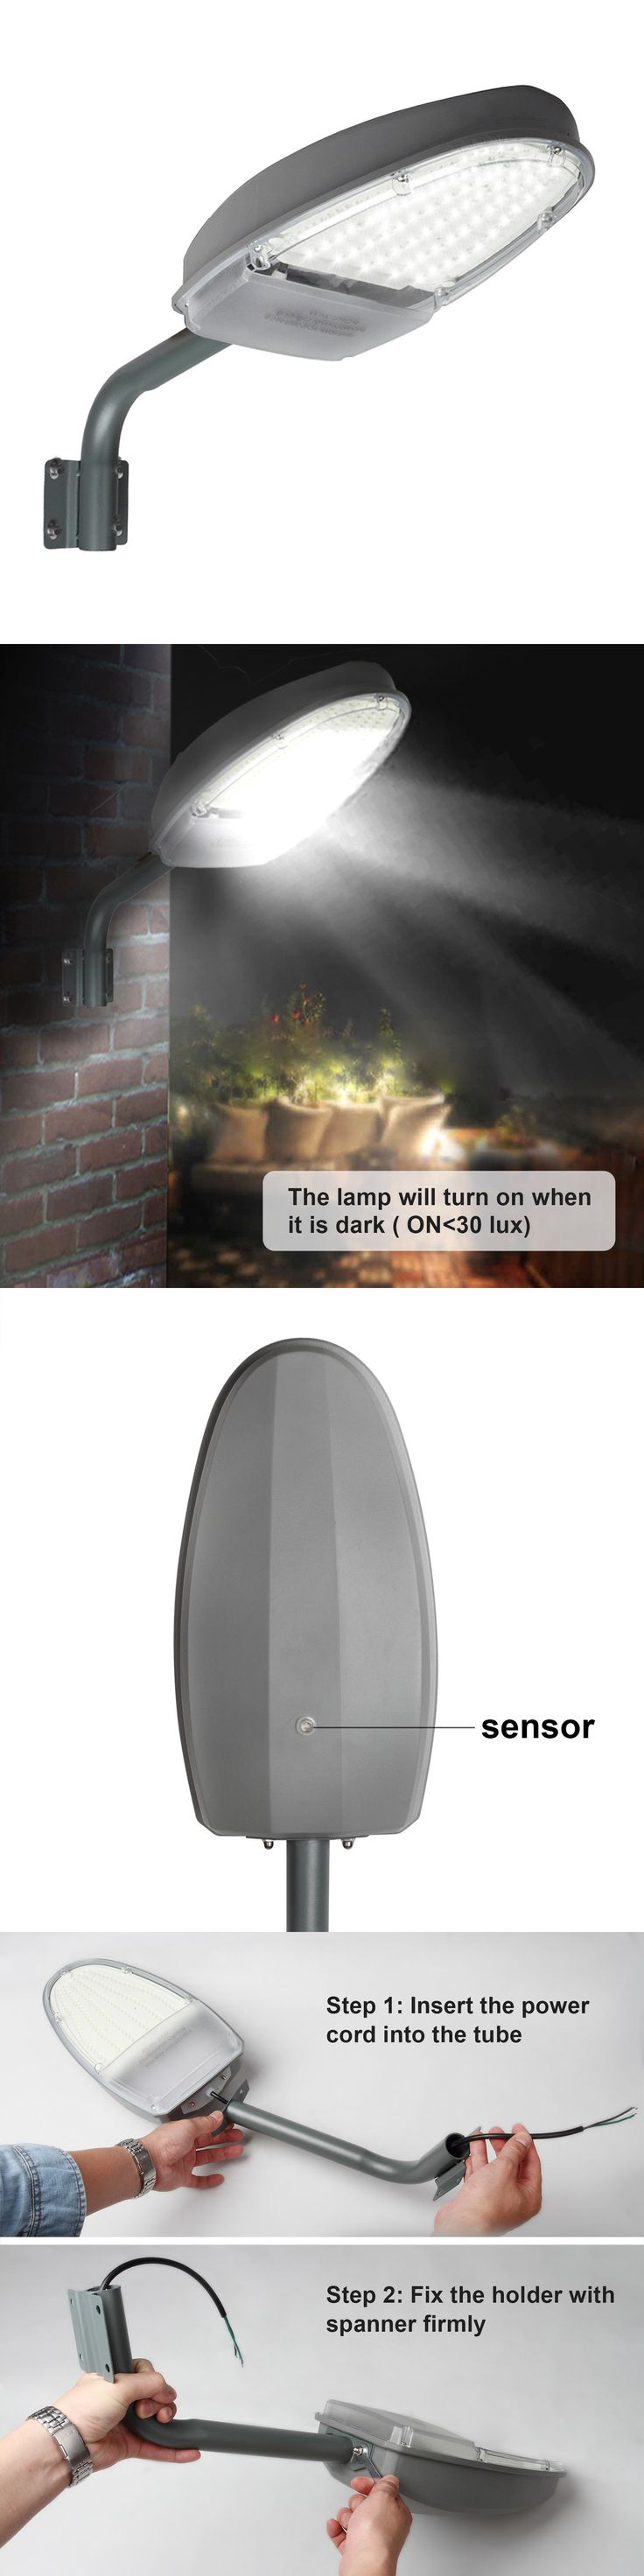 12w flood garden spot lamp source outdoor yard road street led lights - Outdoor Security And Floodlights 183393 24w Led Road Street Flood Light Garden Lamp Outdoor Yard